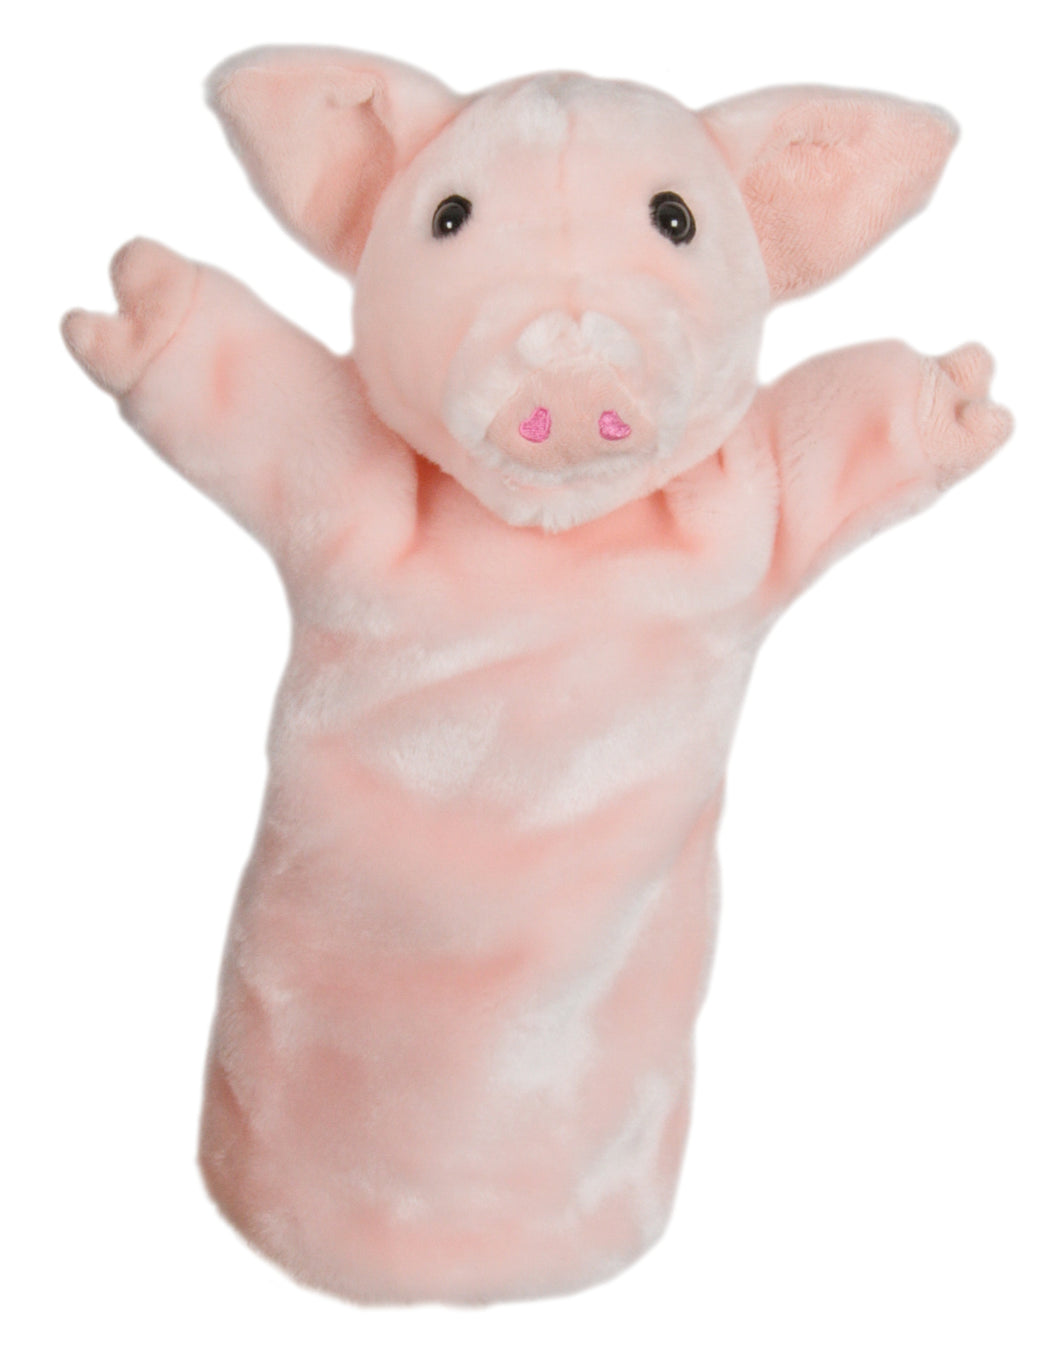 P379-PC006025-marionnette-Cochon-The-Puppet-Company-Long-Sleeved-Glove-Puppets